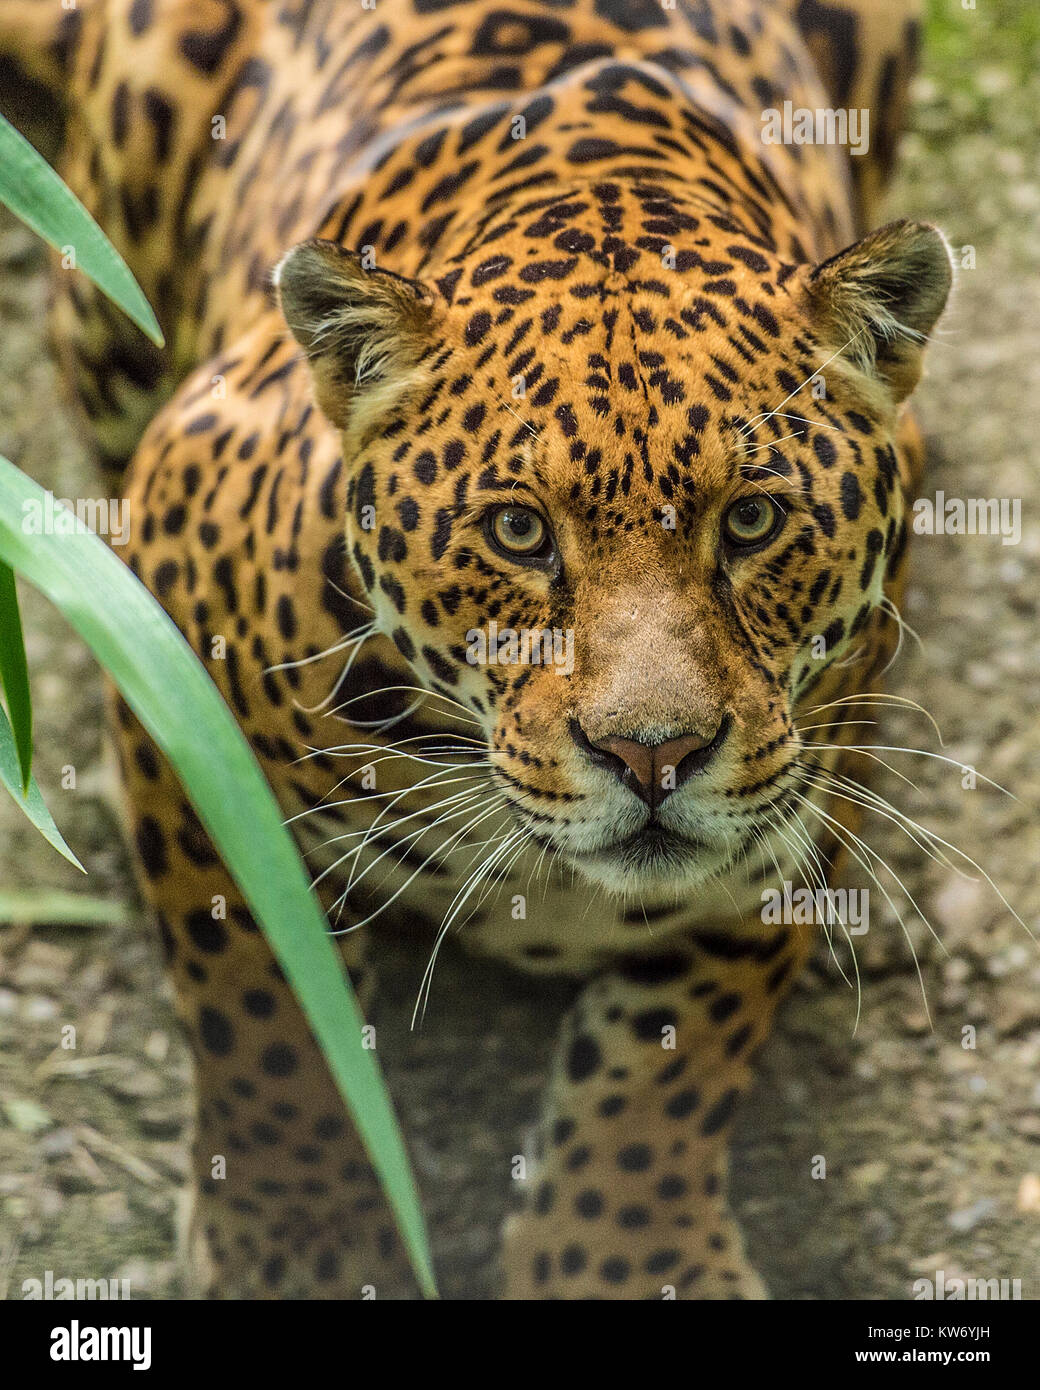 Jaguar Panthera onca Stockbild